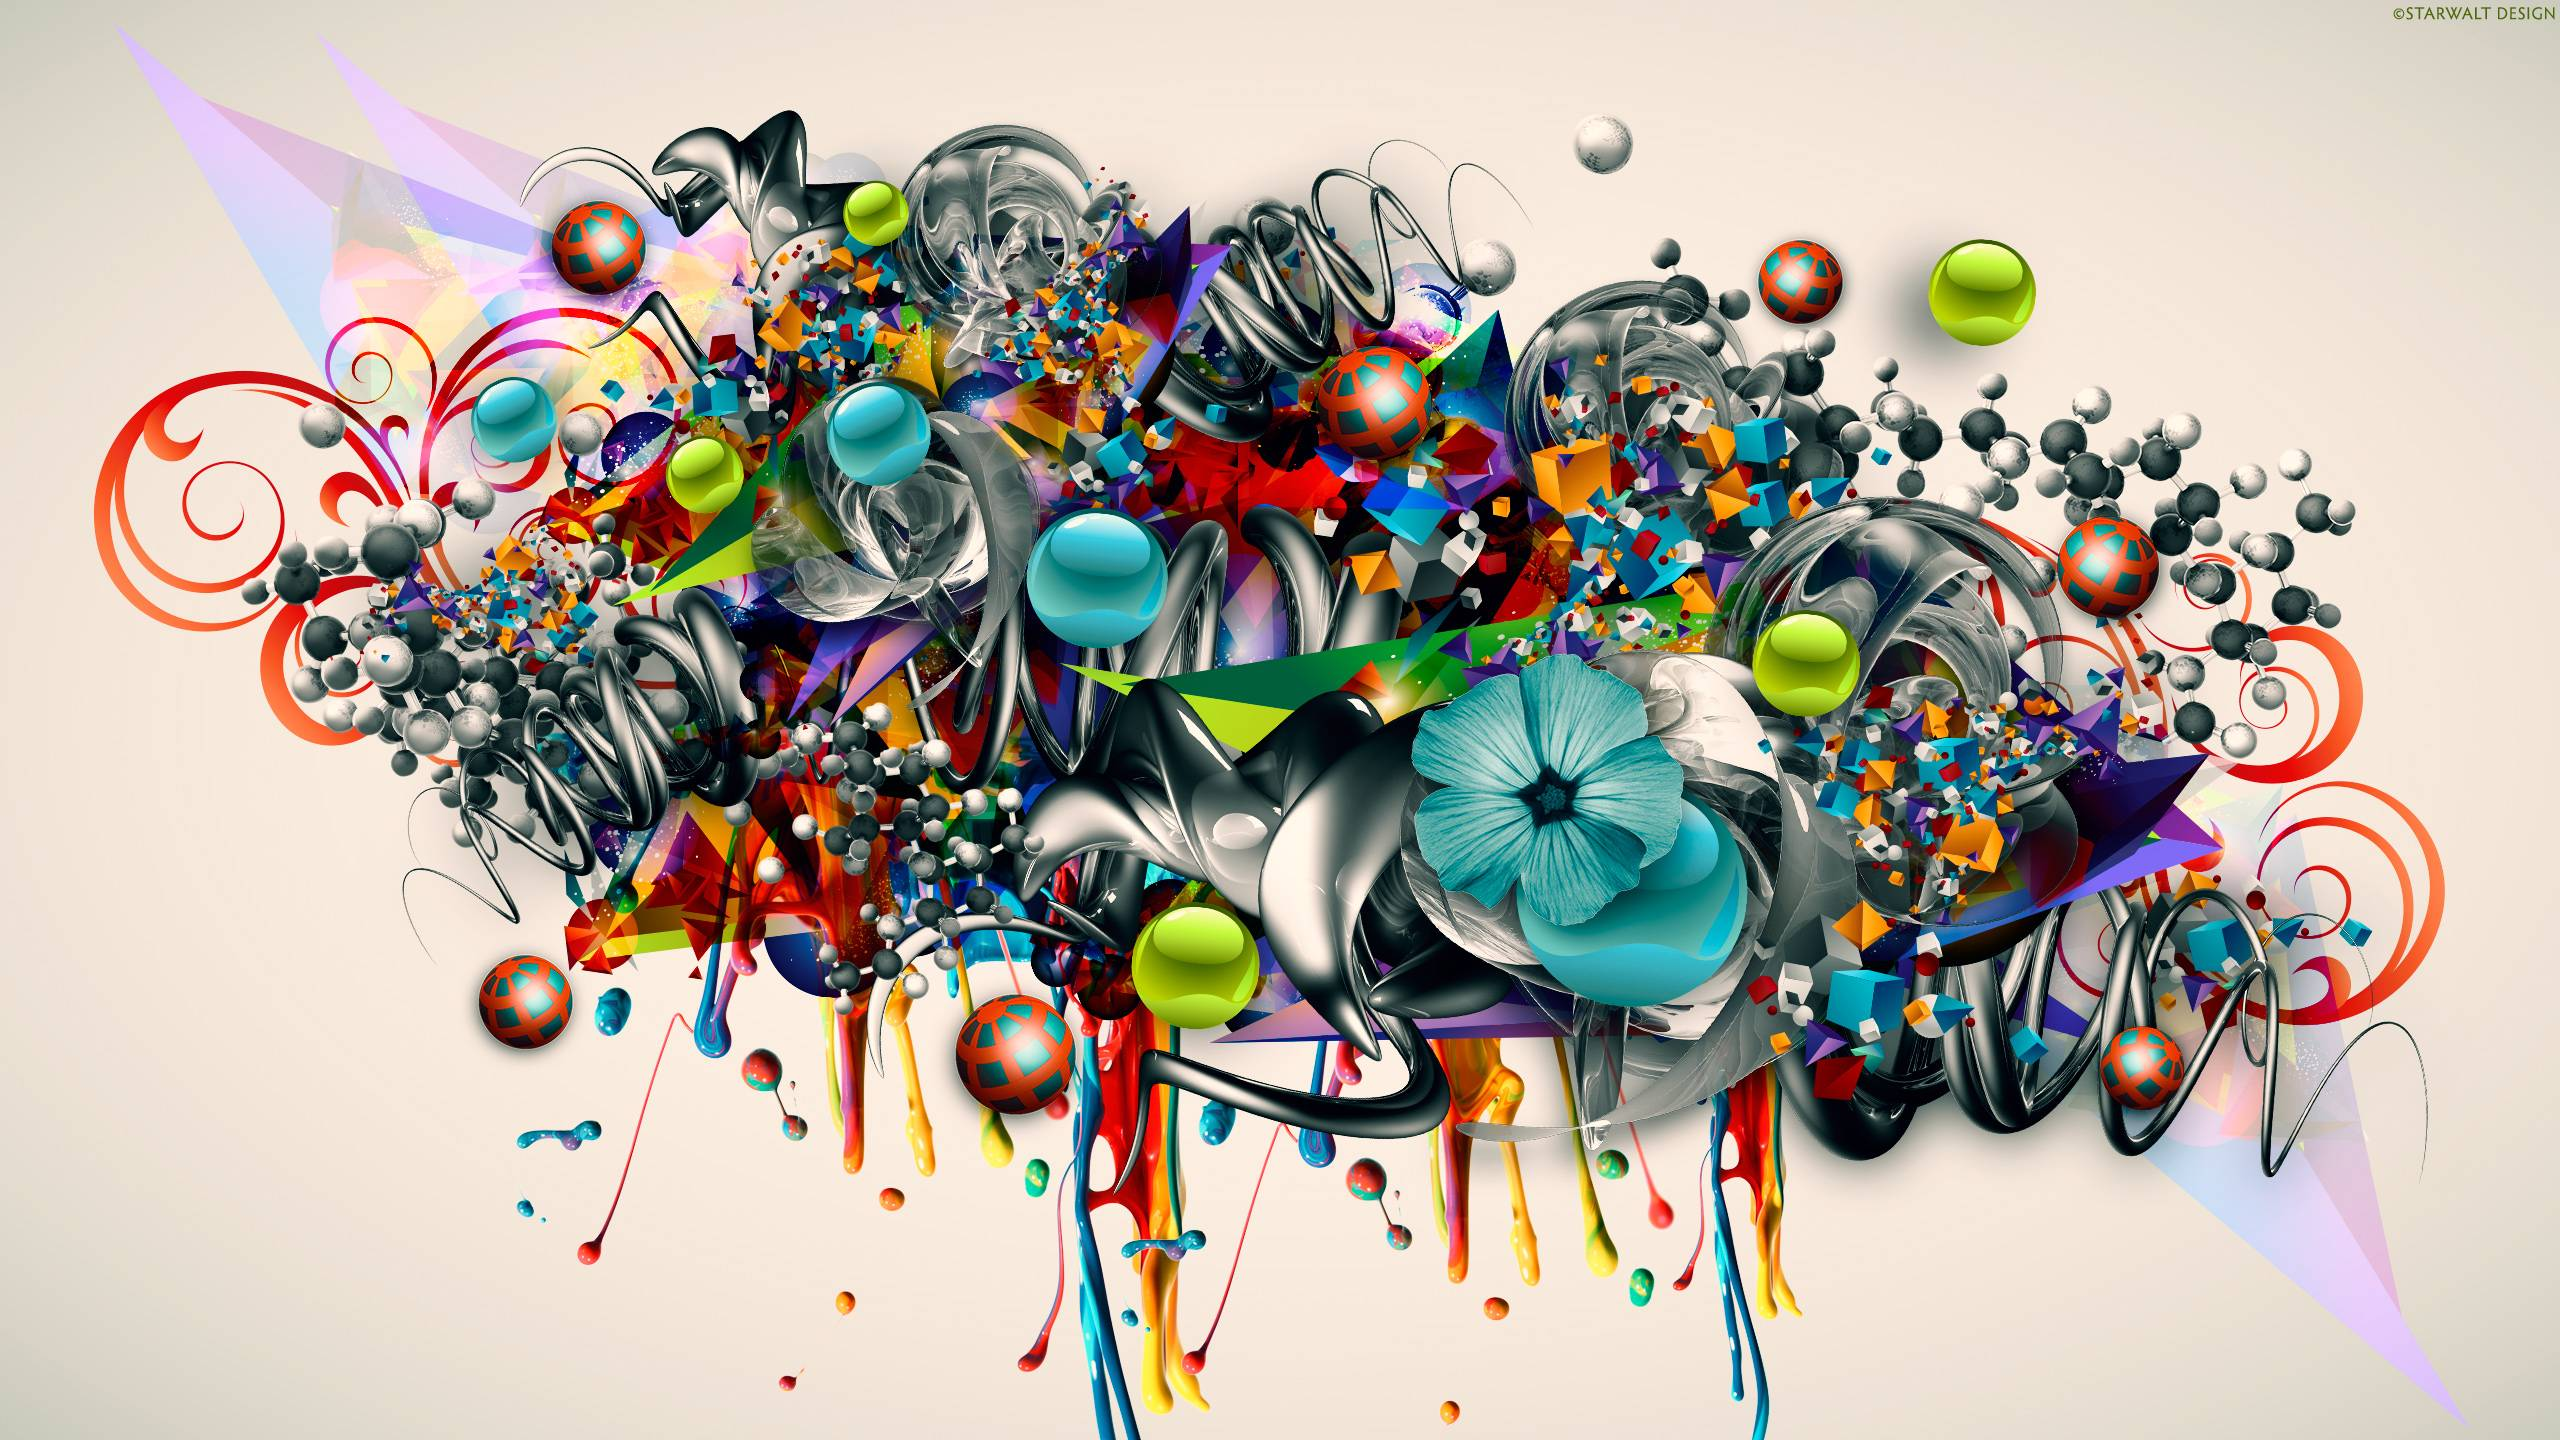 Graffiti Art | More Graffiti, Graffiti wallpaper and Graffiti art ...